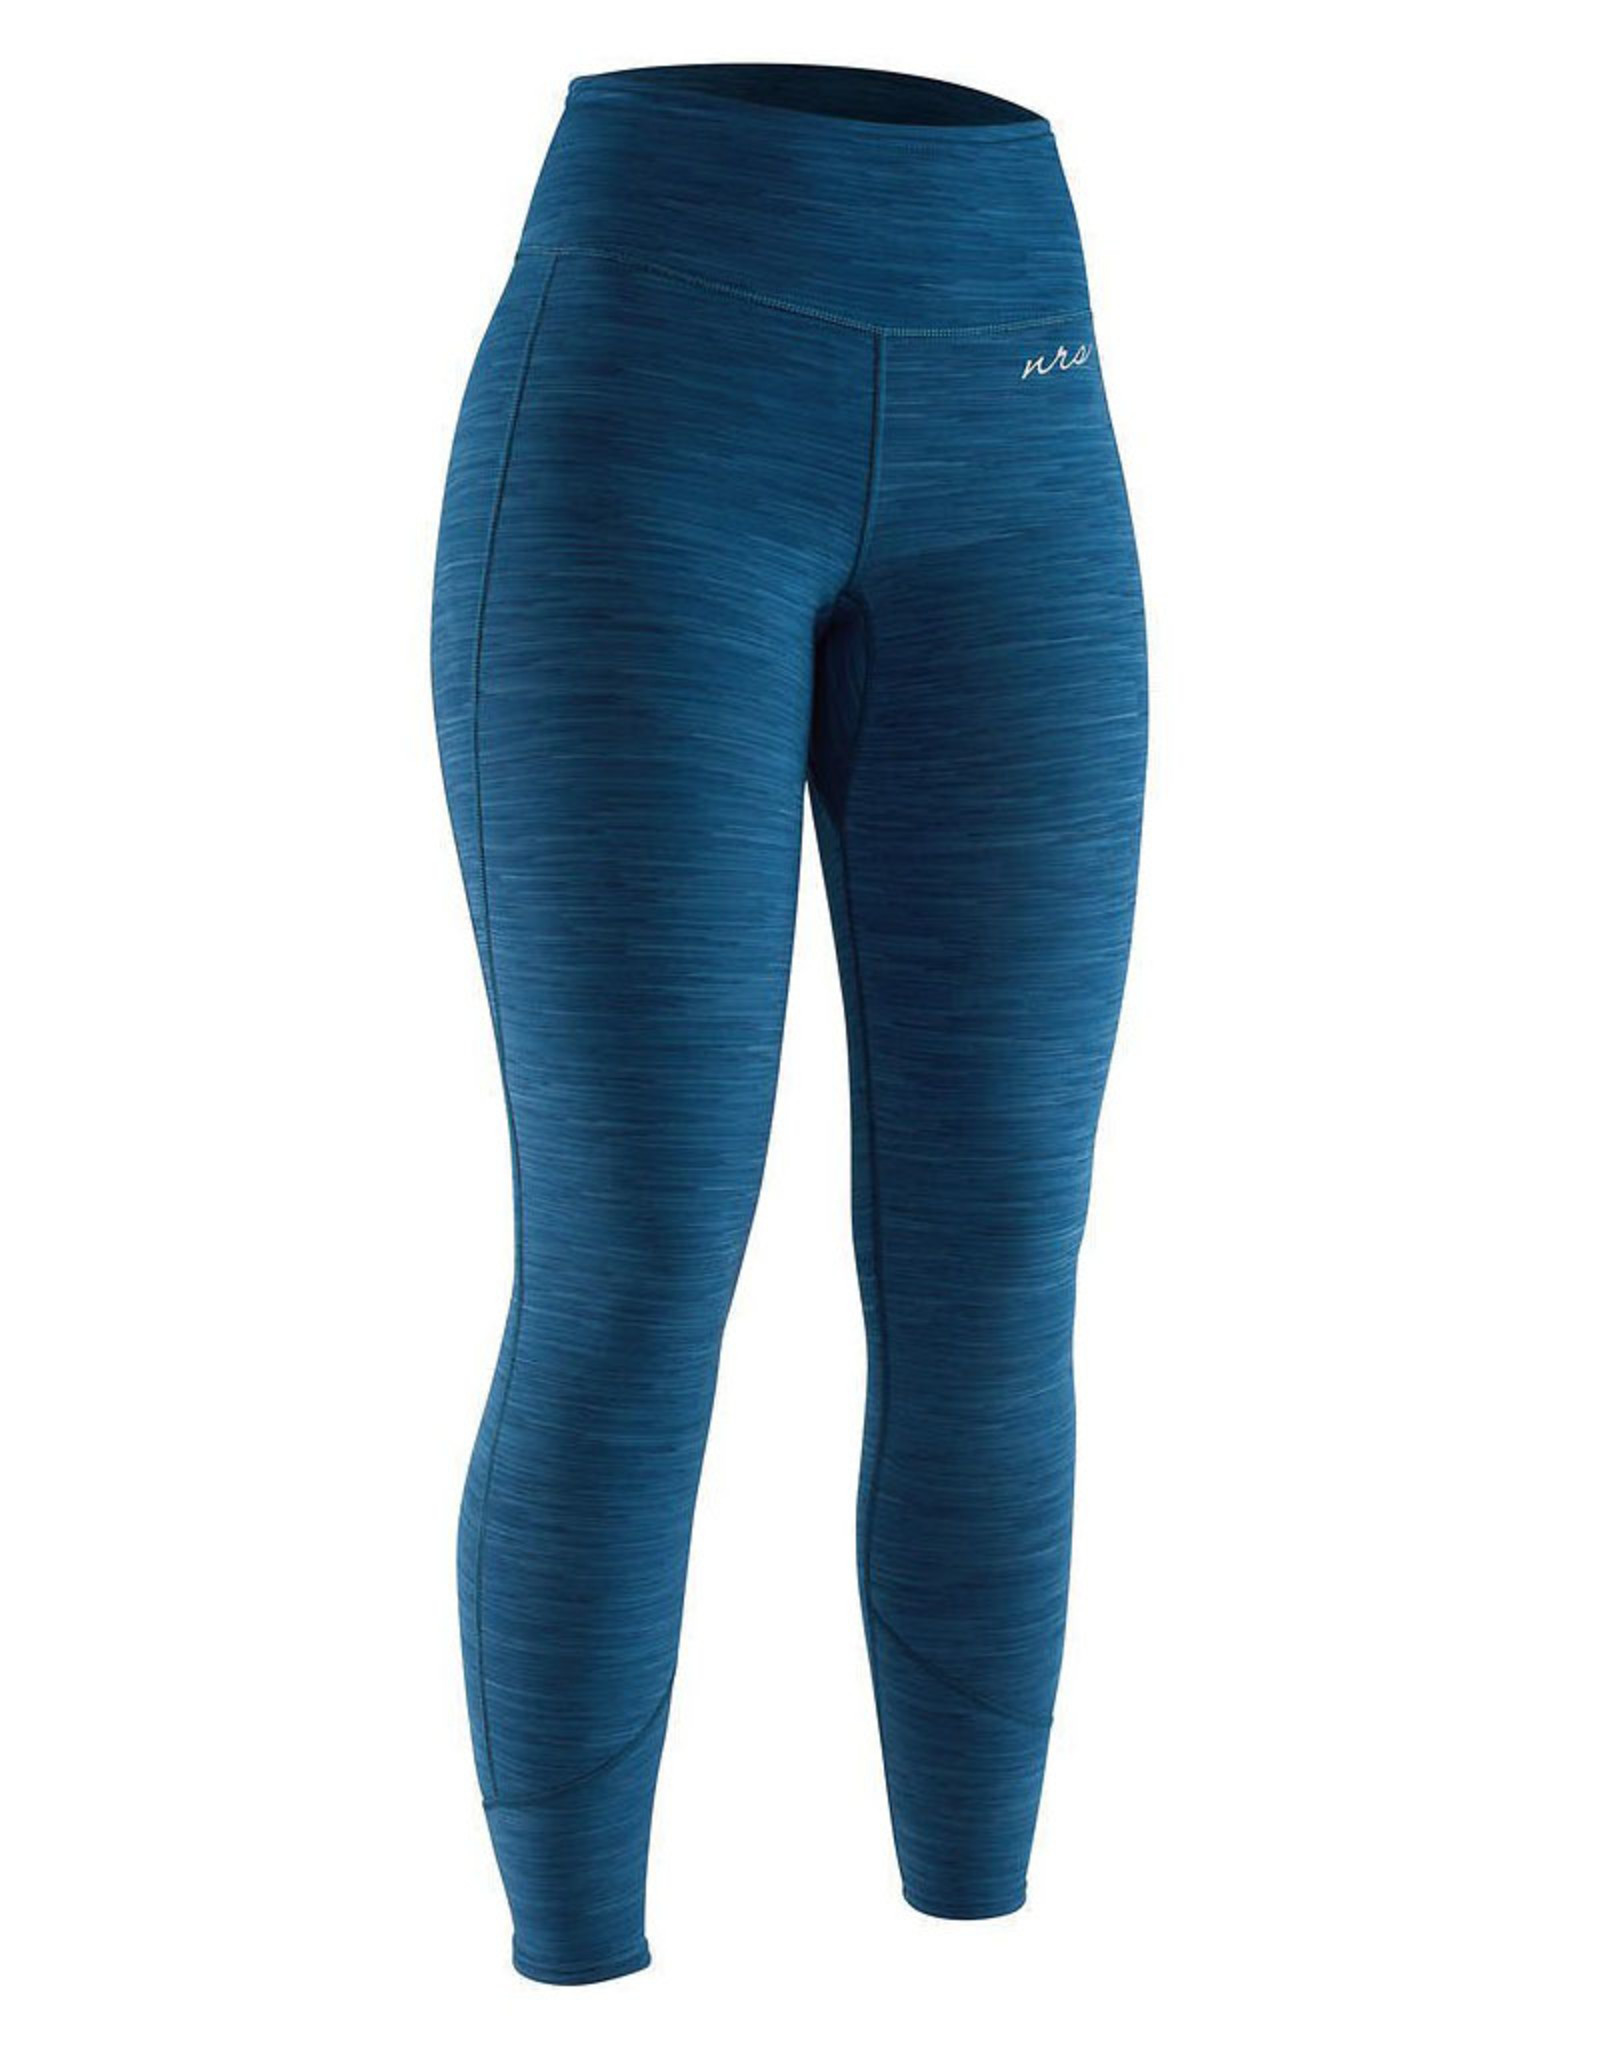 NRS NRS Hydroskin .5 Pants Closeout - Women's